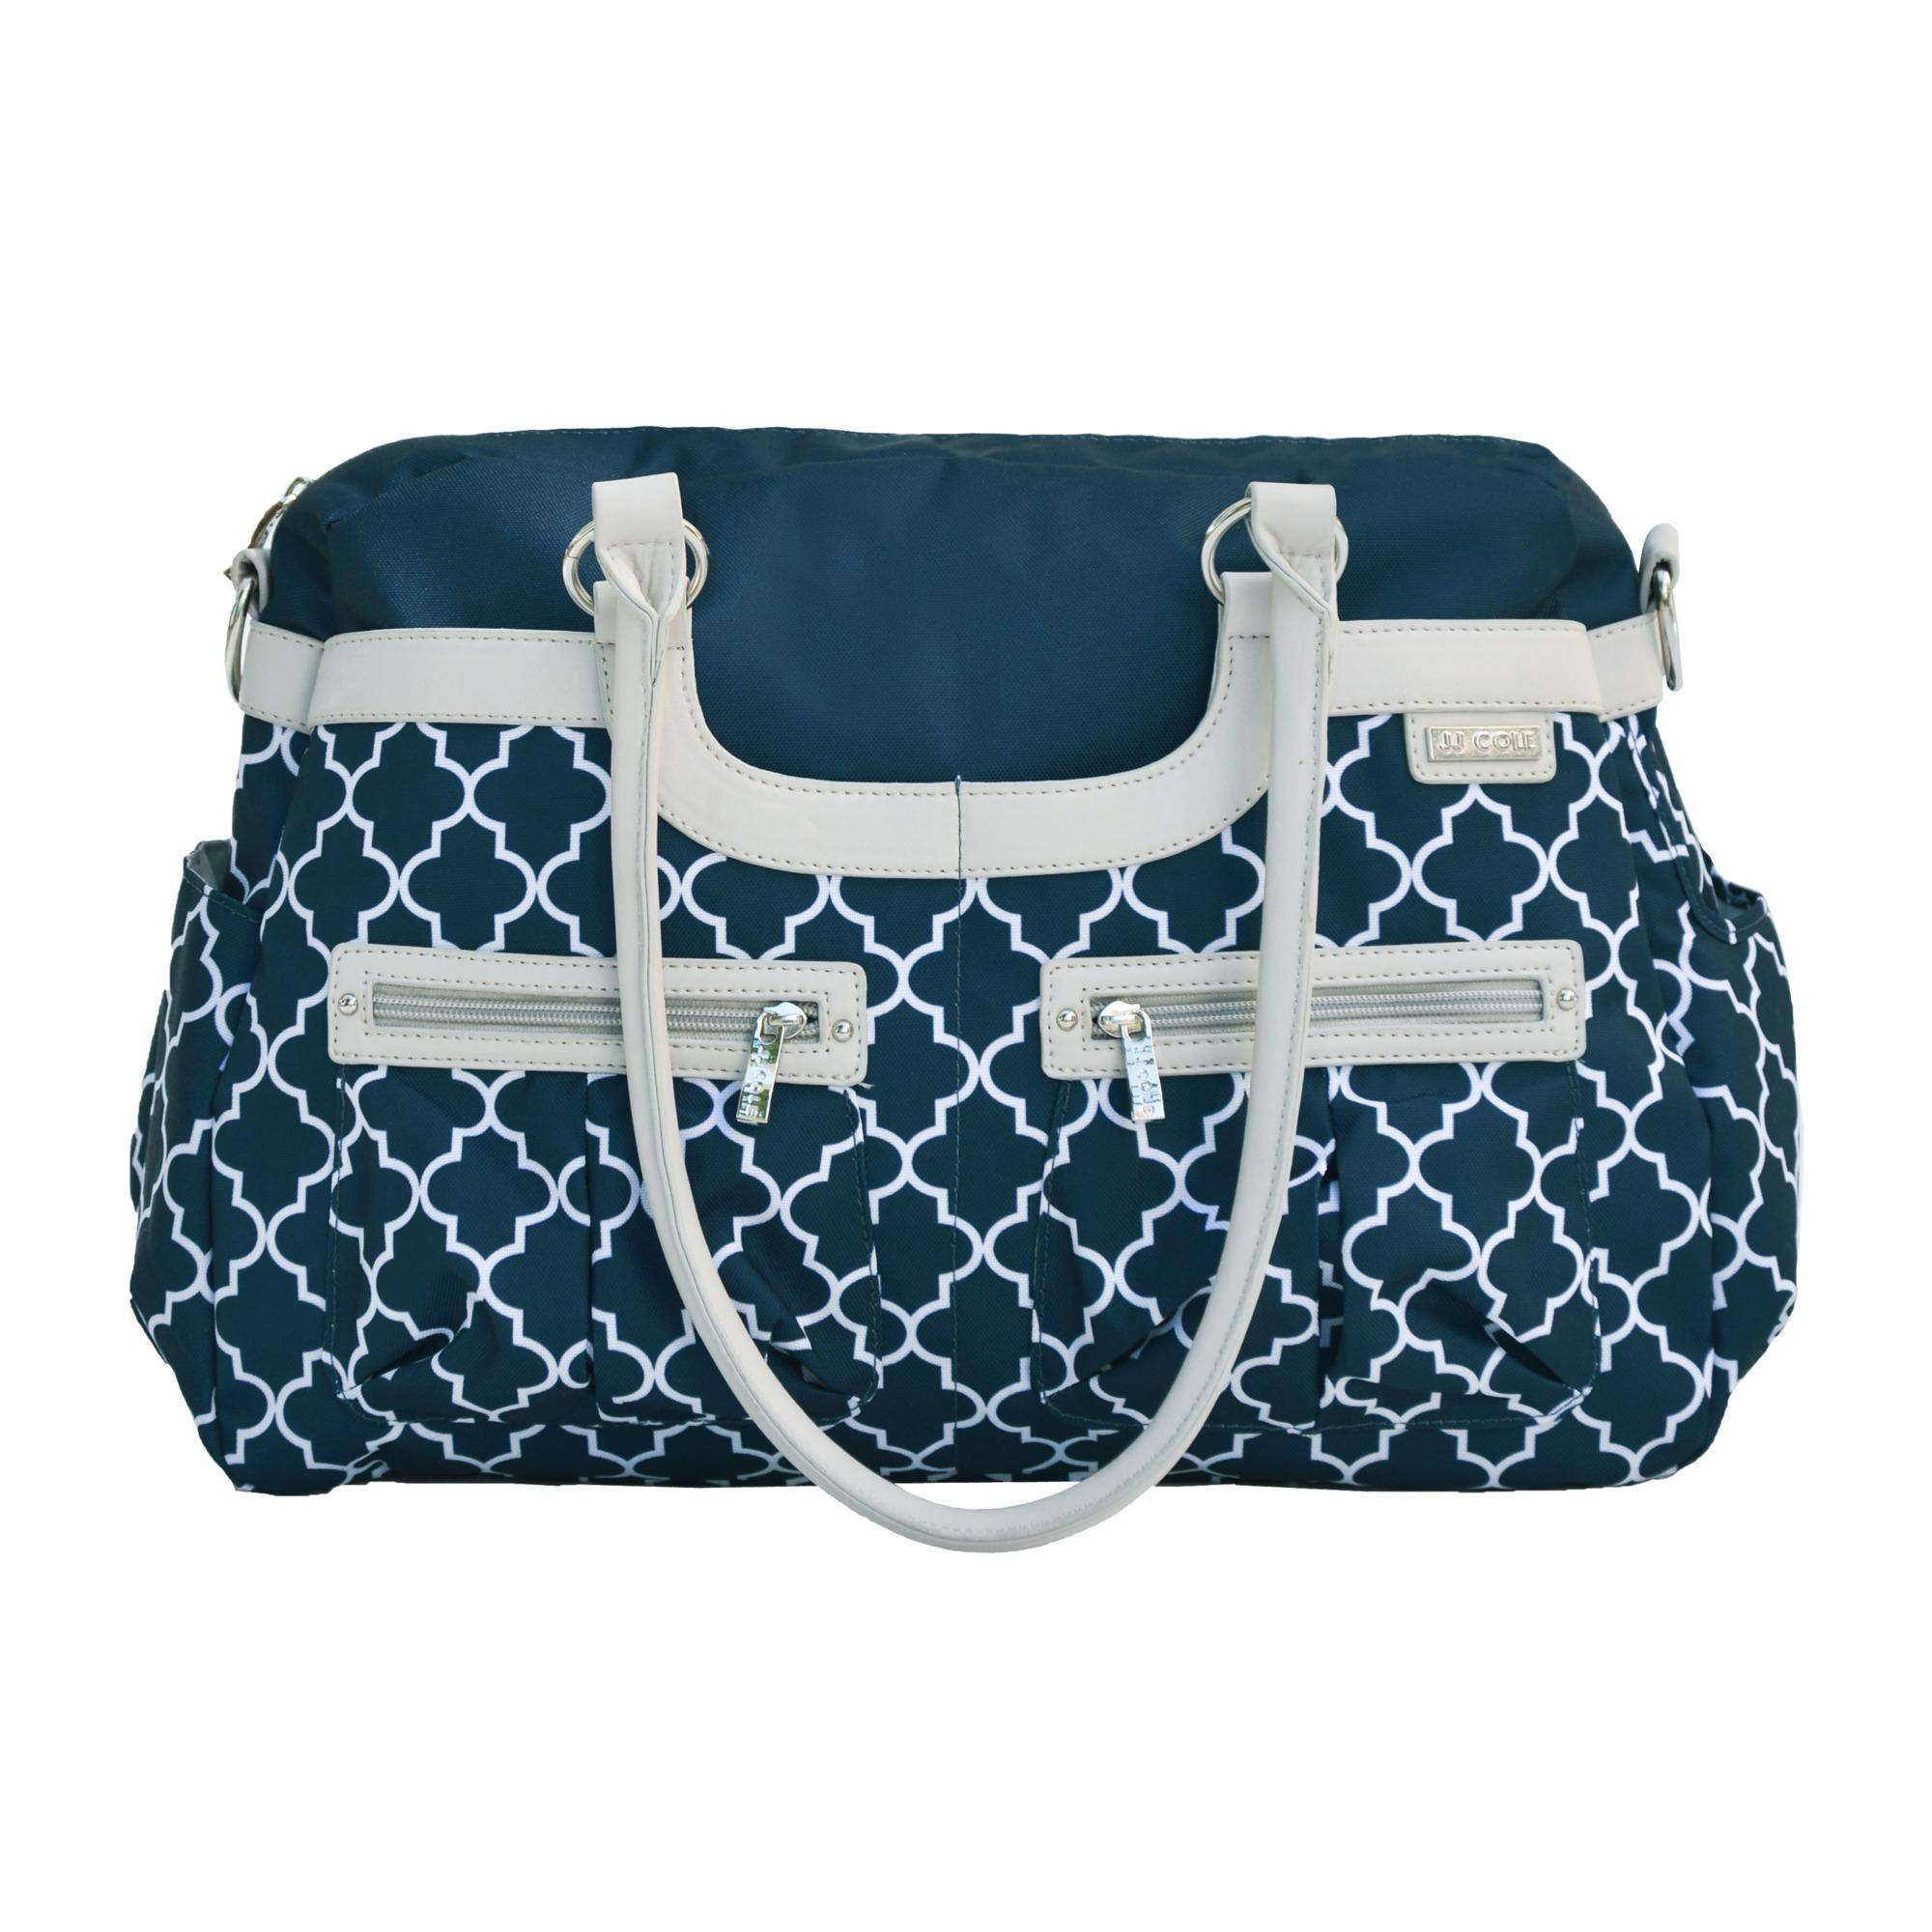 jj cole satchel diaper bag navy arbor baby. Black Bedroom Furniture Sets. Home Design Ideas